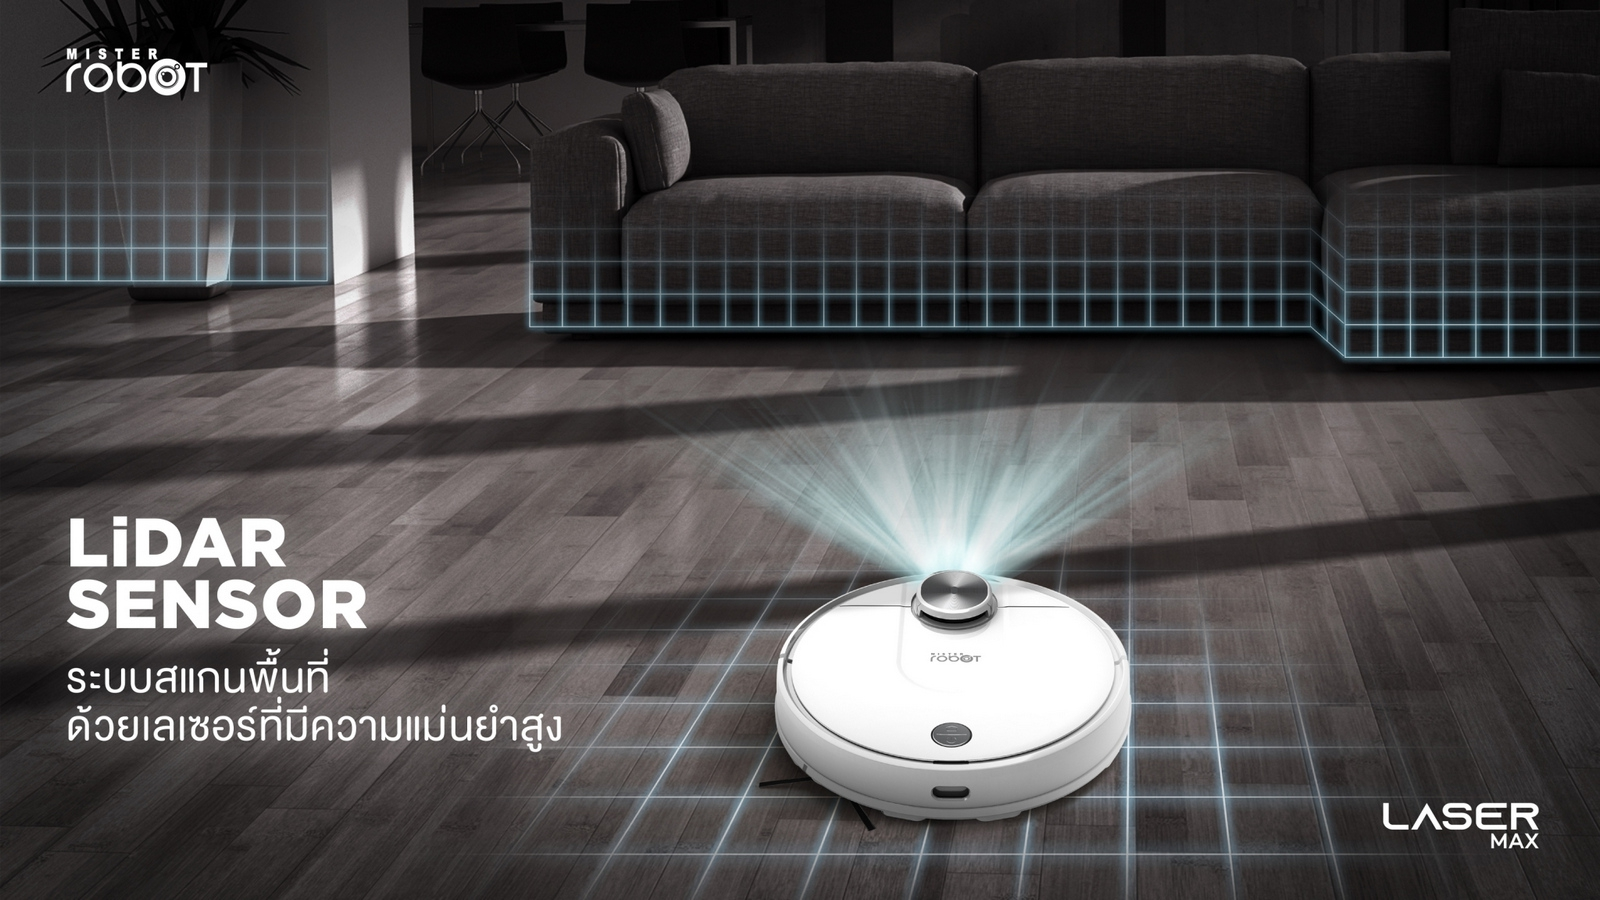 Mister Robot LASER MAX Feature Laser-Guided Navigation System